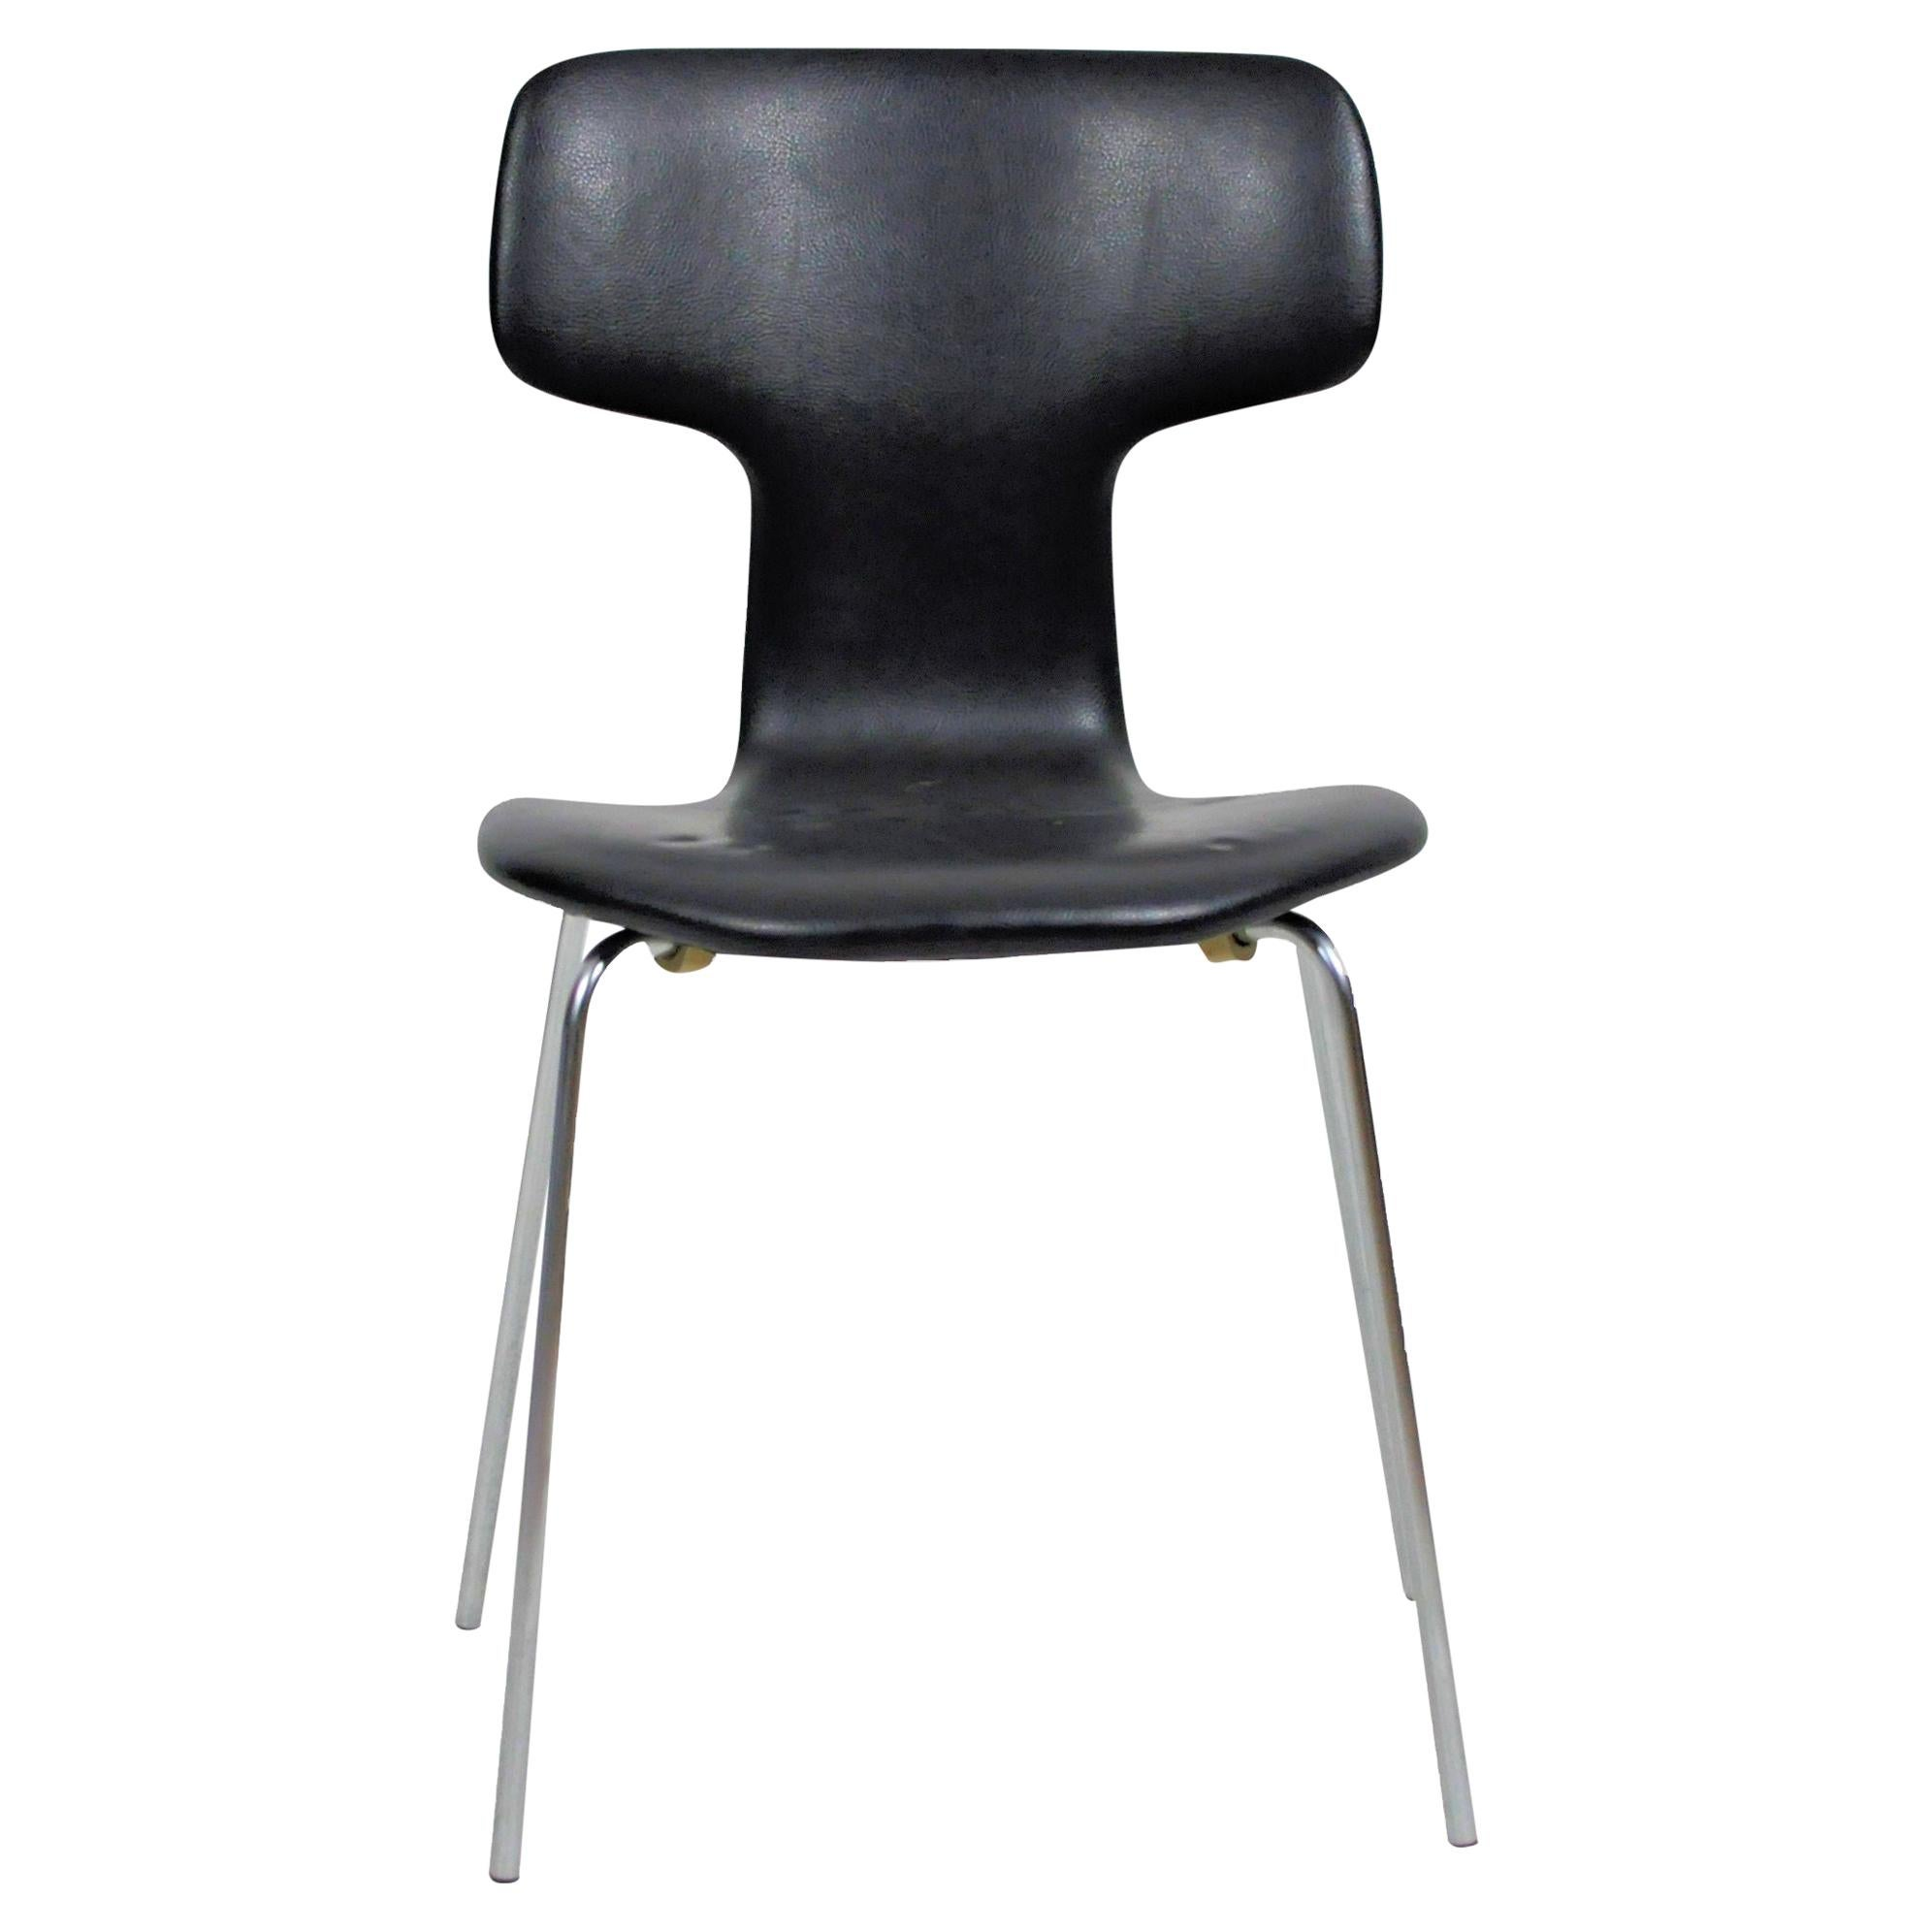 1960s Danish Arne Jacobsen T-Chair / Hammer Chair by Fritz Hansen